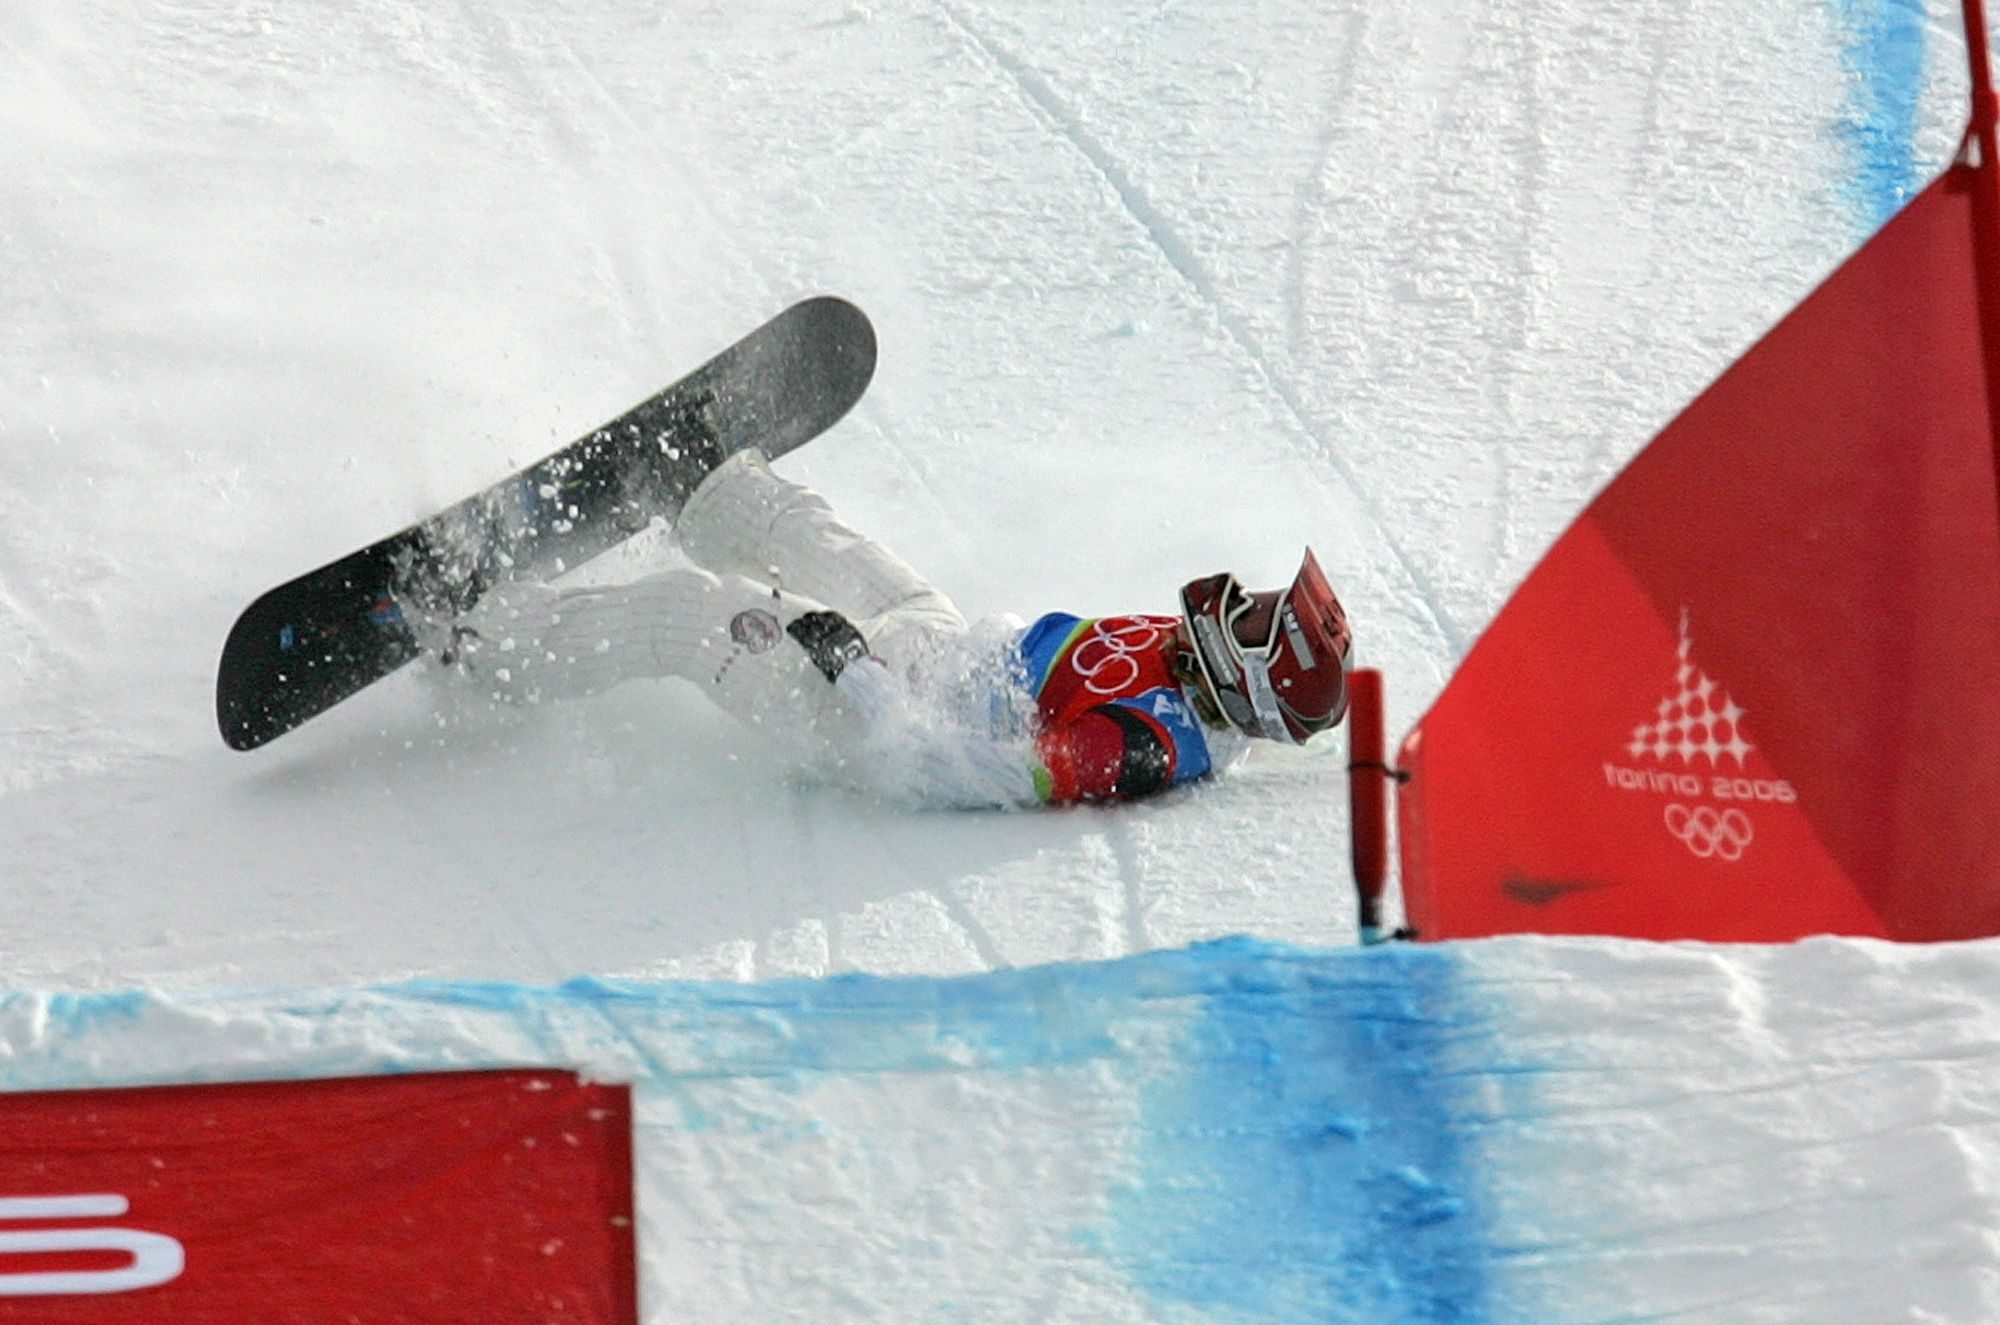 Mandatory Credit: Photo by Lionel Cironneau/AP/Shutterstock (6392064d) JACOBELLIS American Lindsey Jacobellis who was leading in the final of the Women's Snowboard Cross competition, crashes in sight of the finish at the Turin 2006 Winter Olympic Games in Bardonecchia, Italy, . Tanja Frieden of Switzerland won the race to take the gold medal, Jacobellis finished second to take the silver medal, and Dominique Maltais of Canada bronze WINTER OLYMPICS SNOWBOARD CROSS USA TR1, BARDONECCHIA, Italy